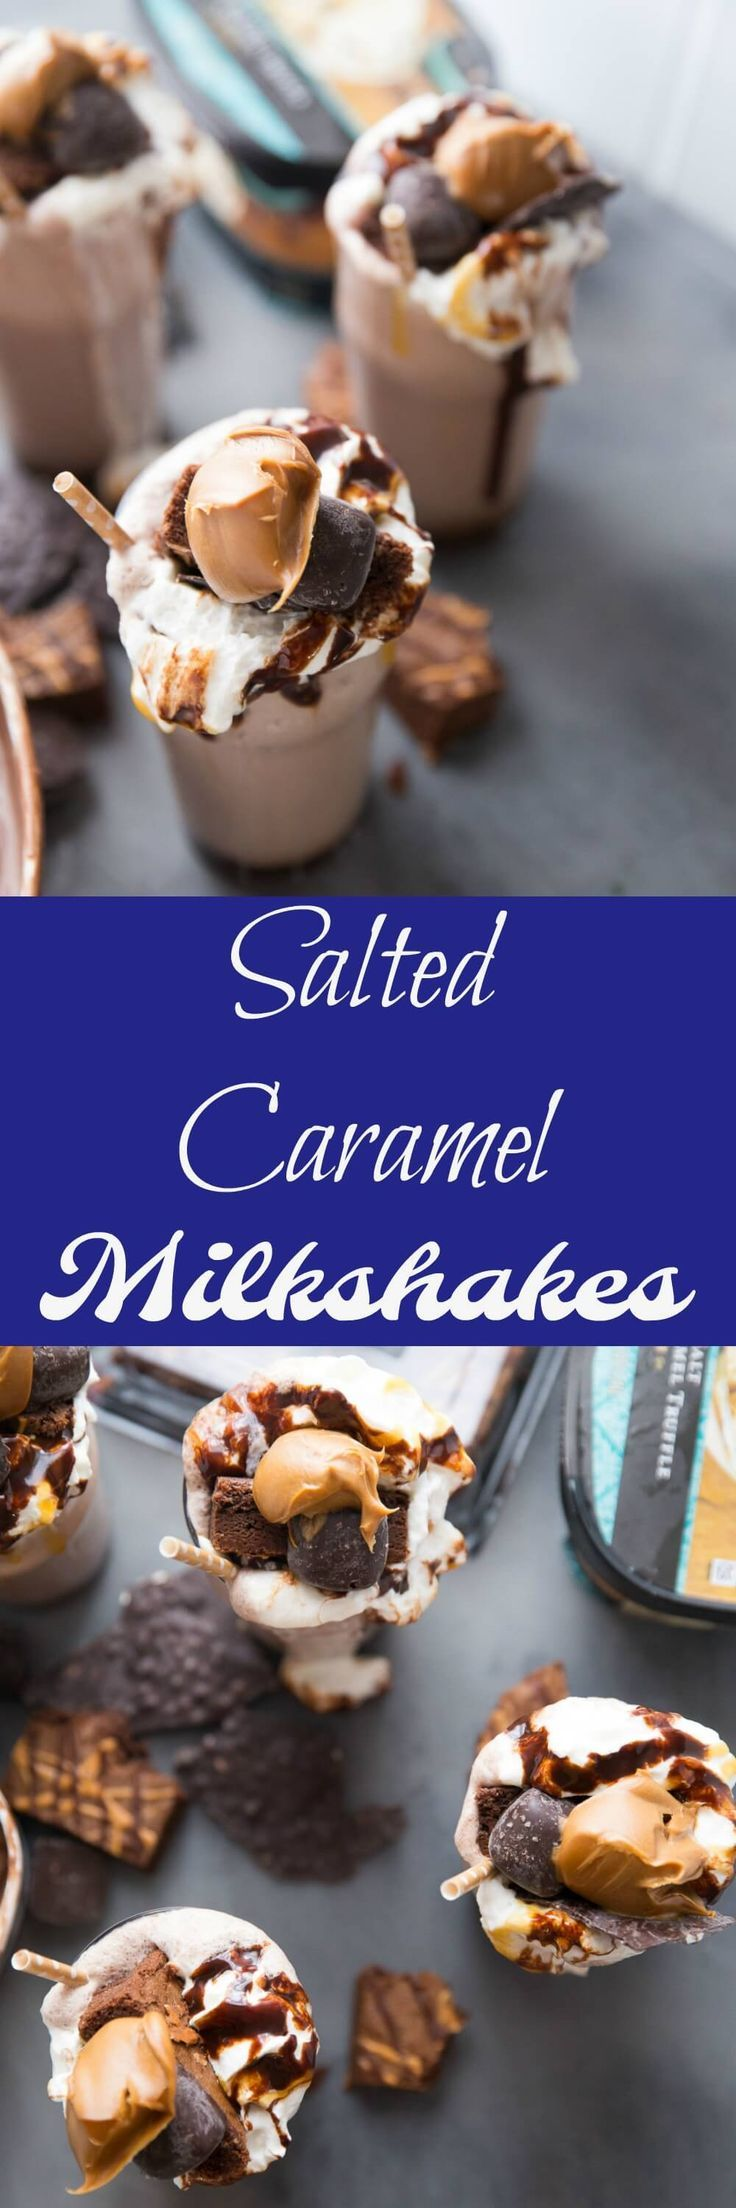 This salted caramel milkshake is for extreme salted caramel lovers! Brownies, candies, salted caramel sauce, and two kinds of ice creams make this one memorable and extreme milkshake!